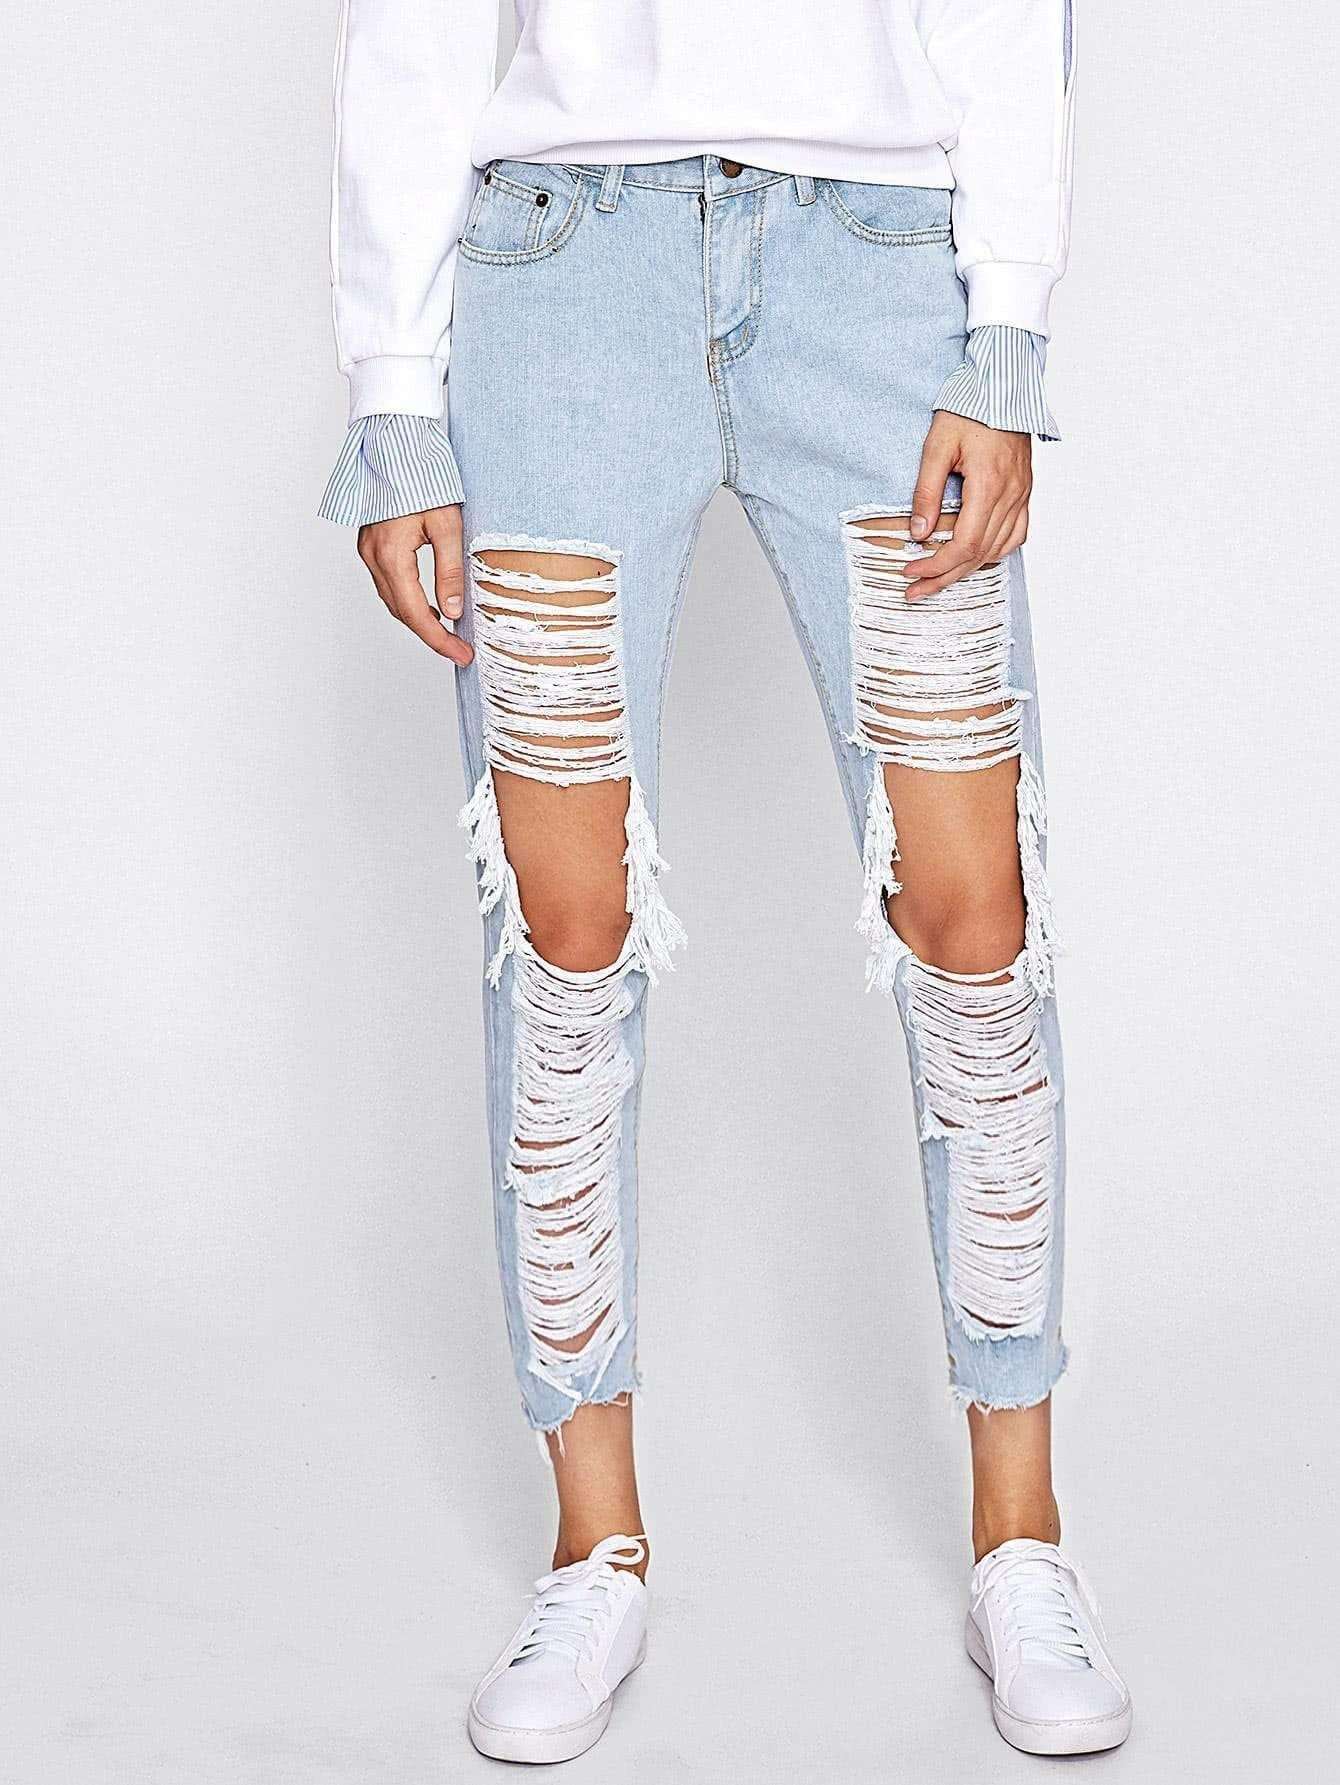 c966582343 Extreme Distressing Ripped Knees Jeans - Popviva DESTROYED STRETCHY PANTS